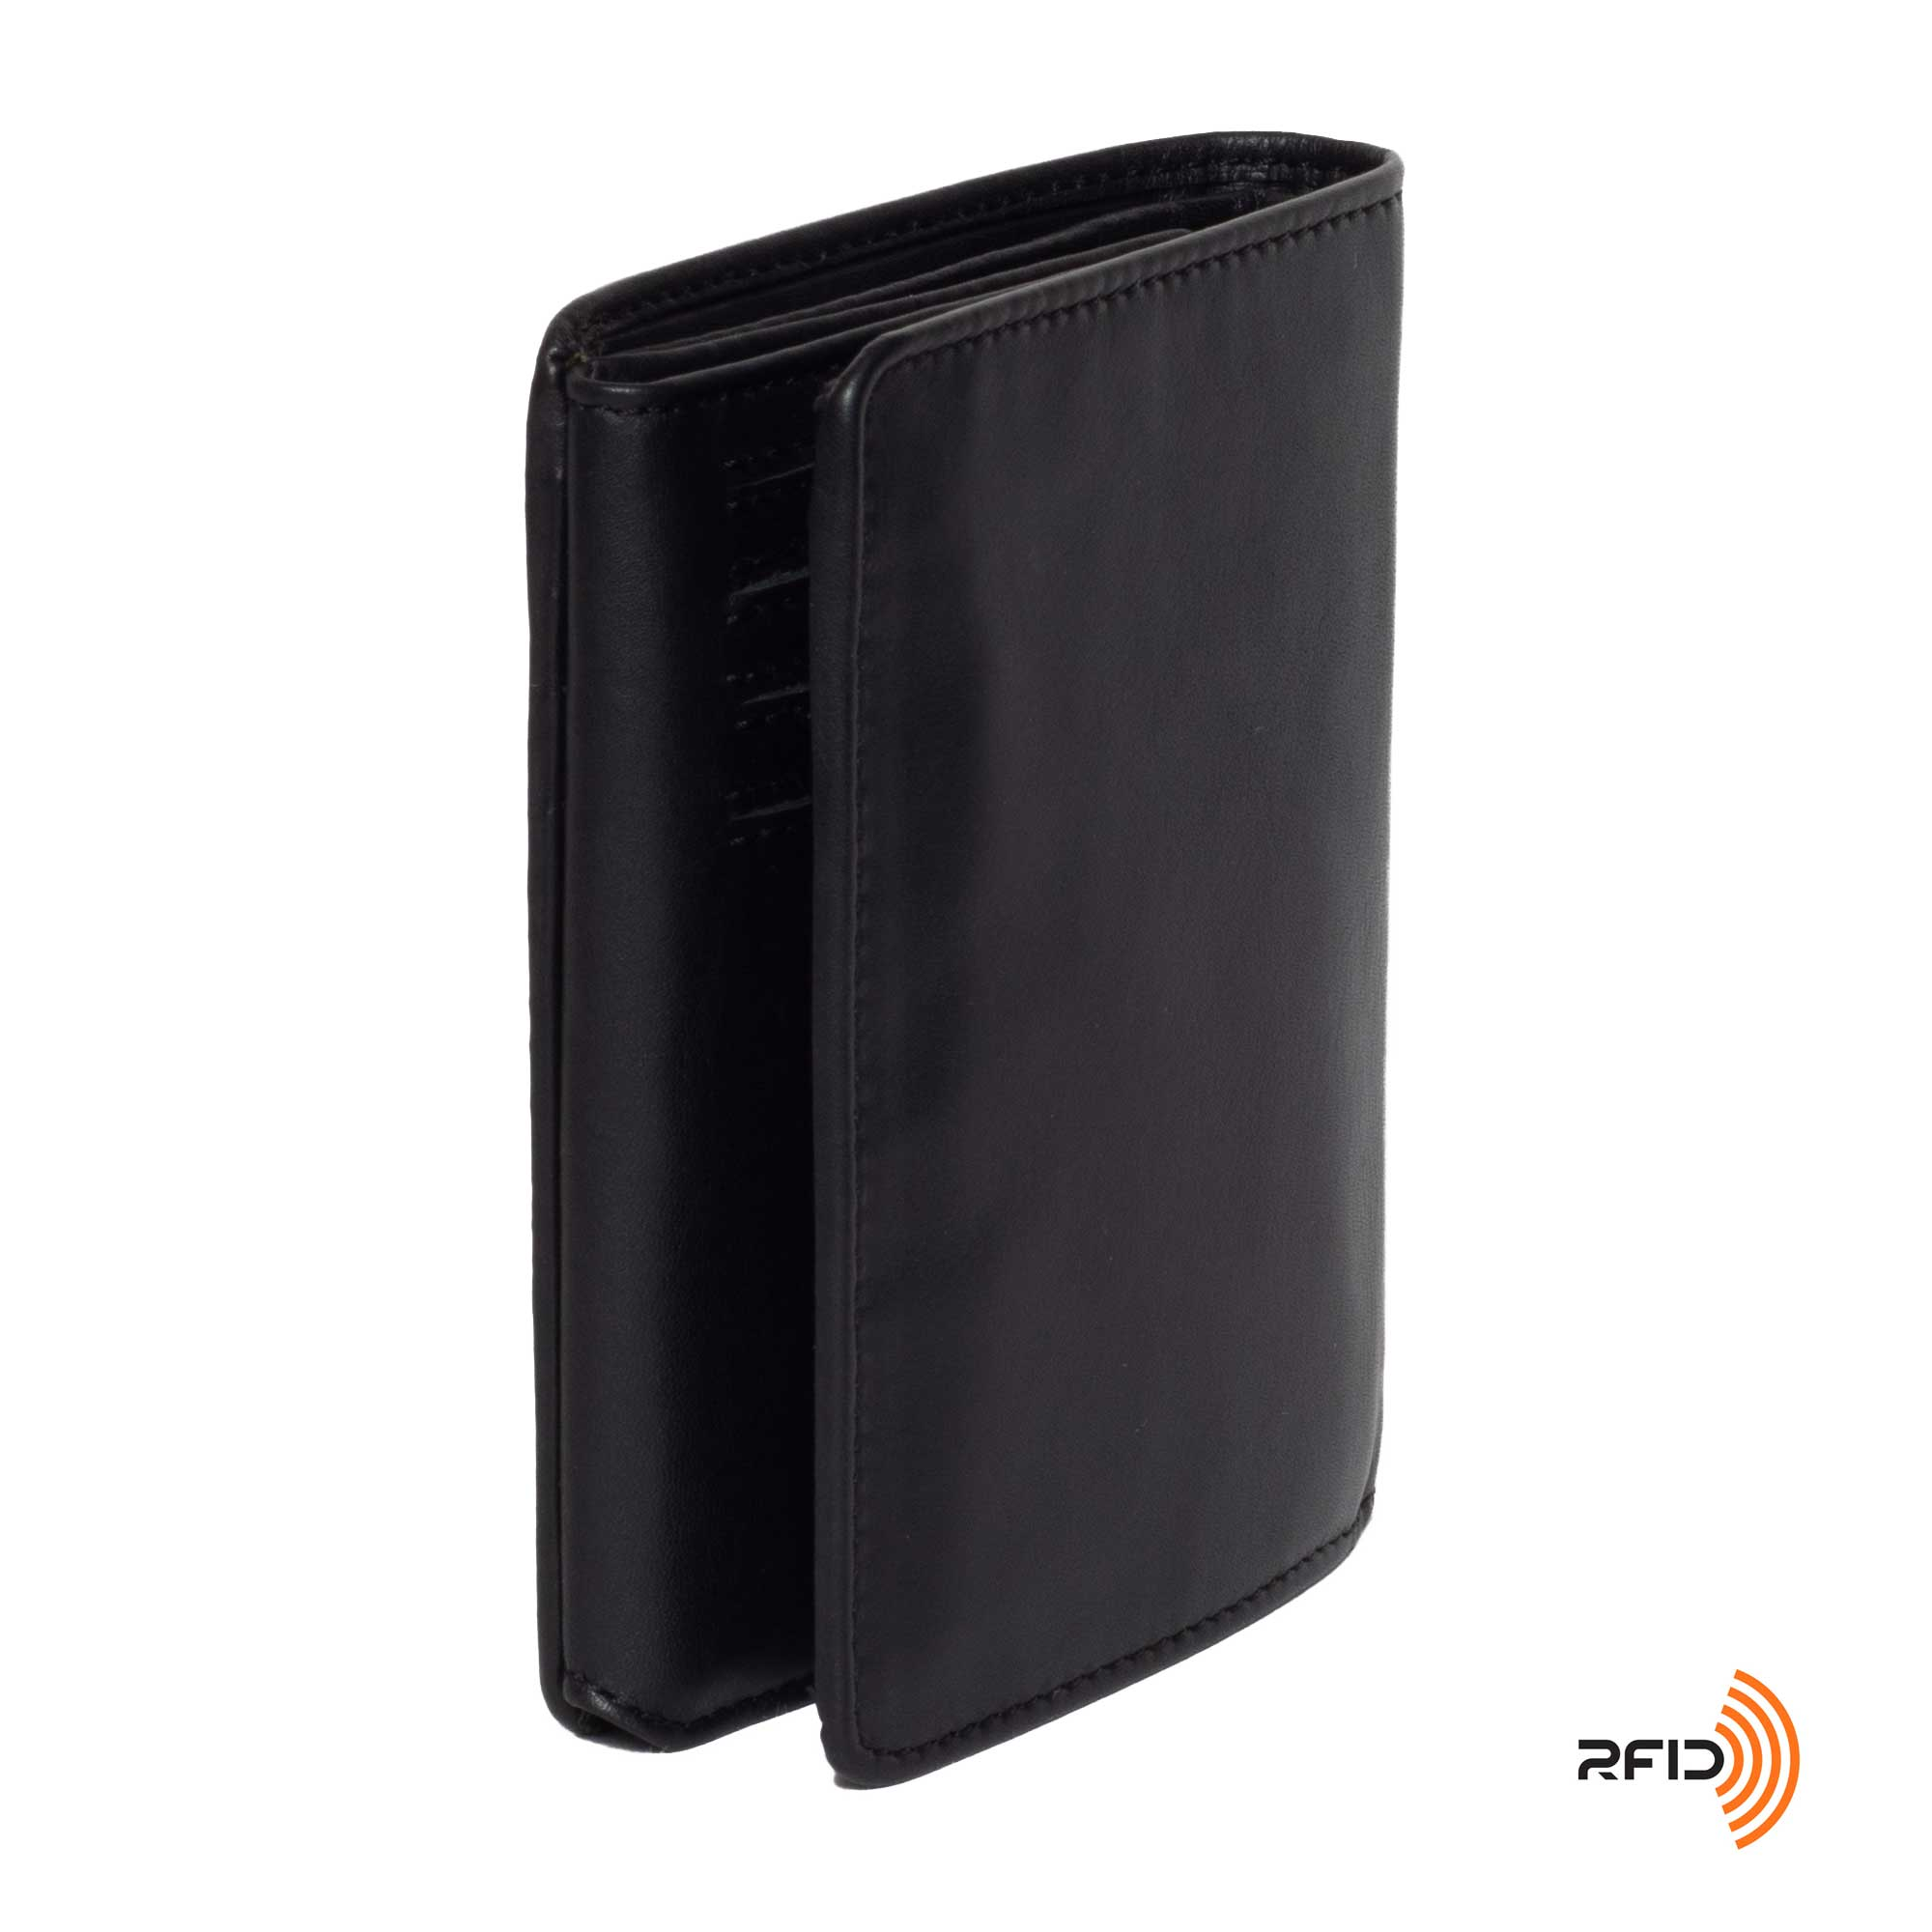 DiLoro Men's Vertical Leather Bifold Flip ID Zip Coin Wallet Black with RFID Protection  - Back, Side View